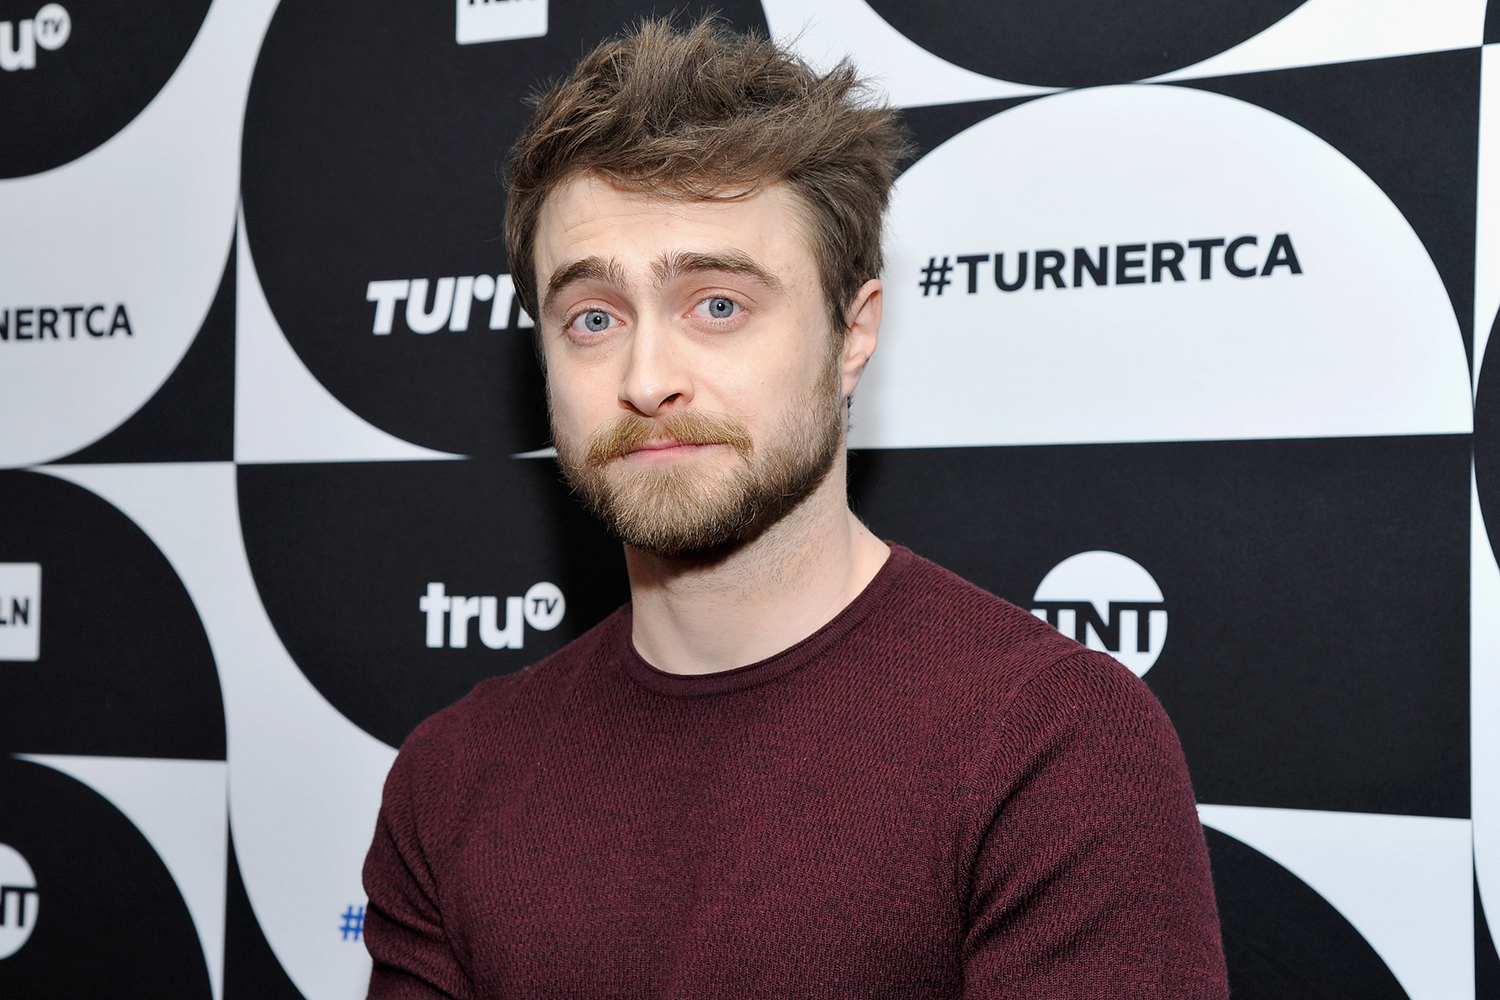 Daniel Radcliffe Reads the Thirstiest Tweets About Him | PEOPLE.com